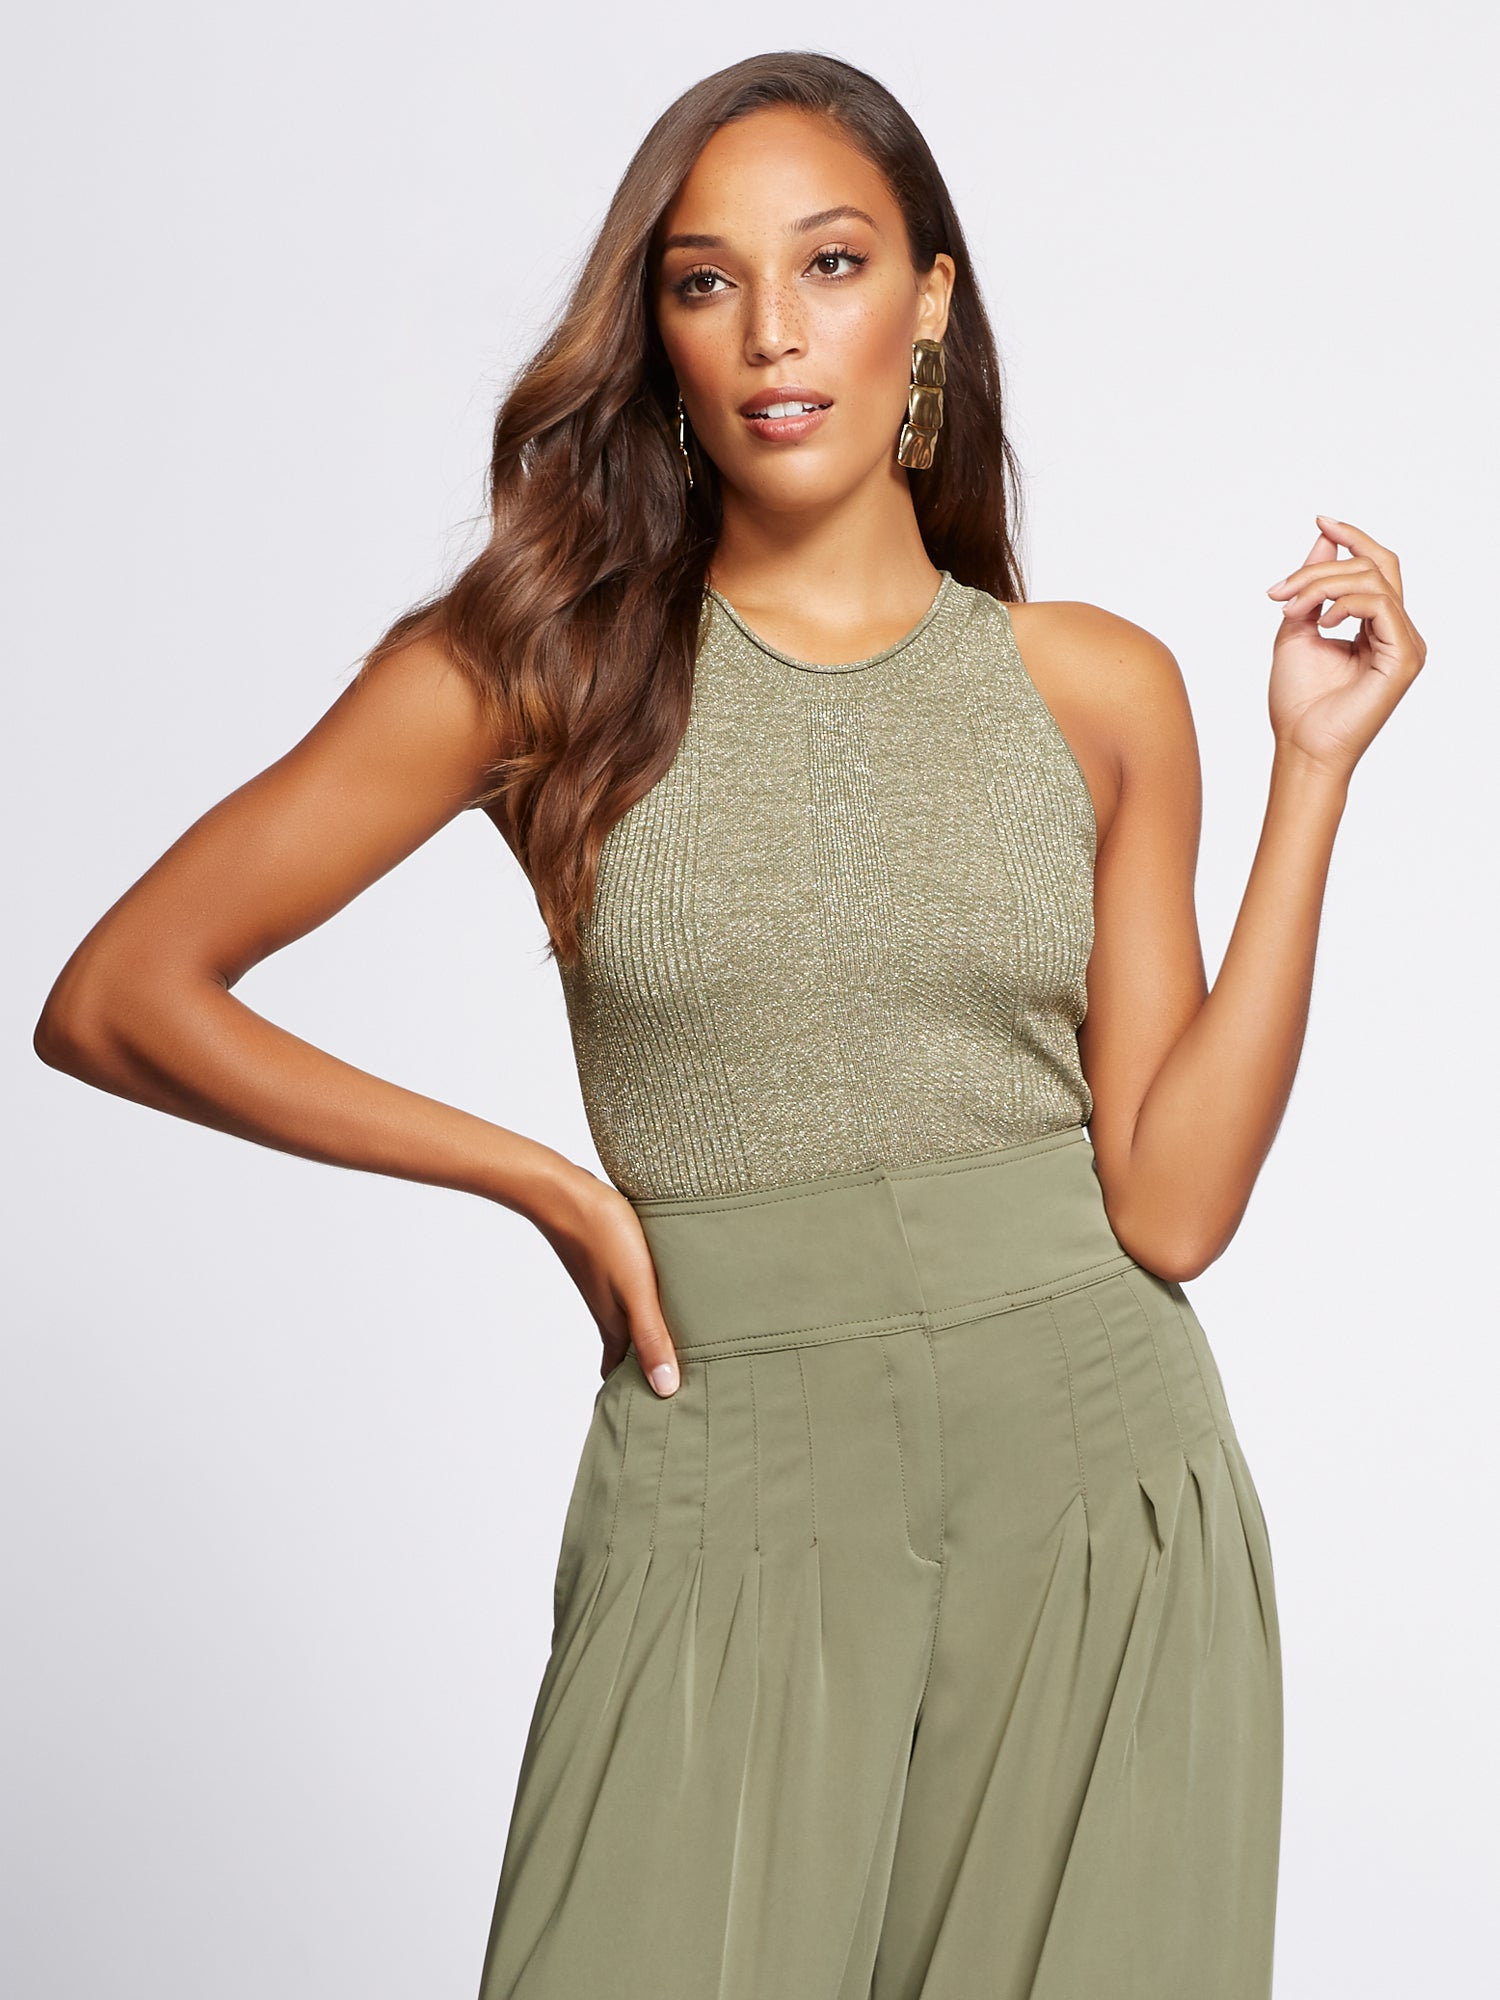 78fc4cc4f08 Gabrielle Union Collection - Tank Top in Olive Whispers